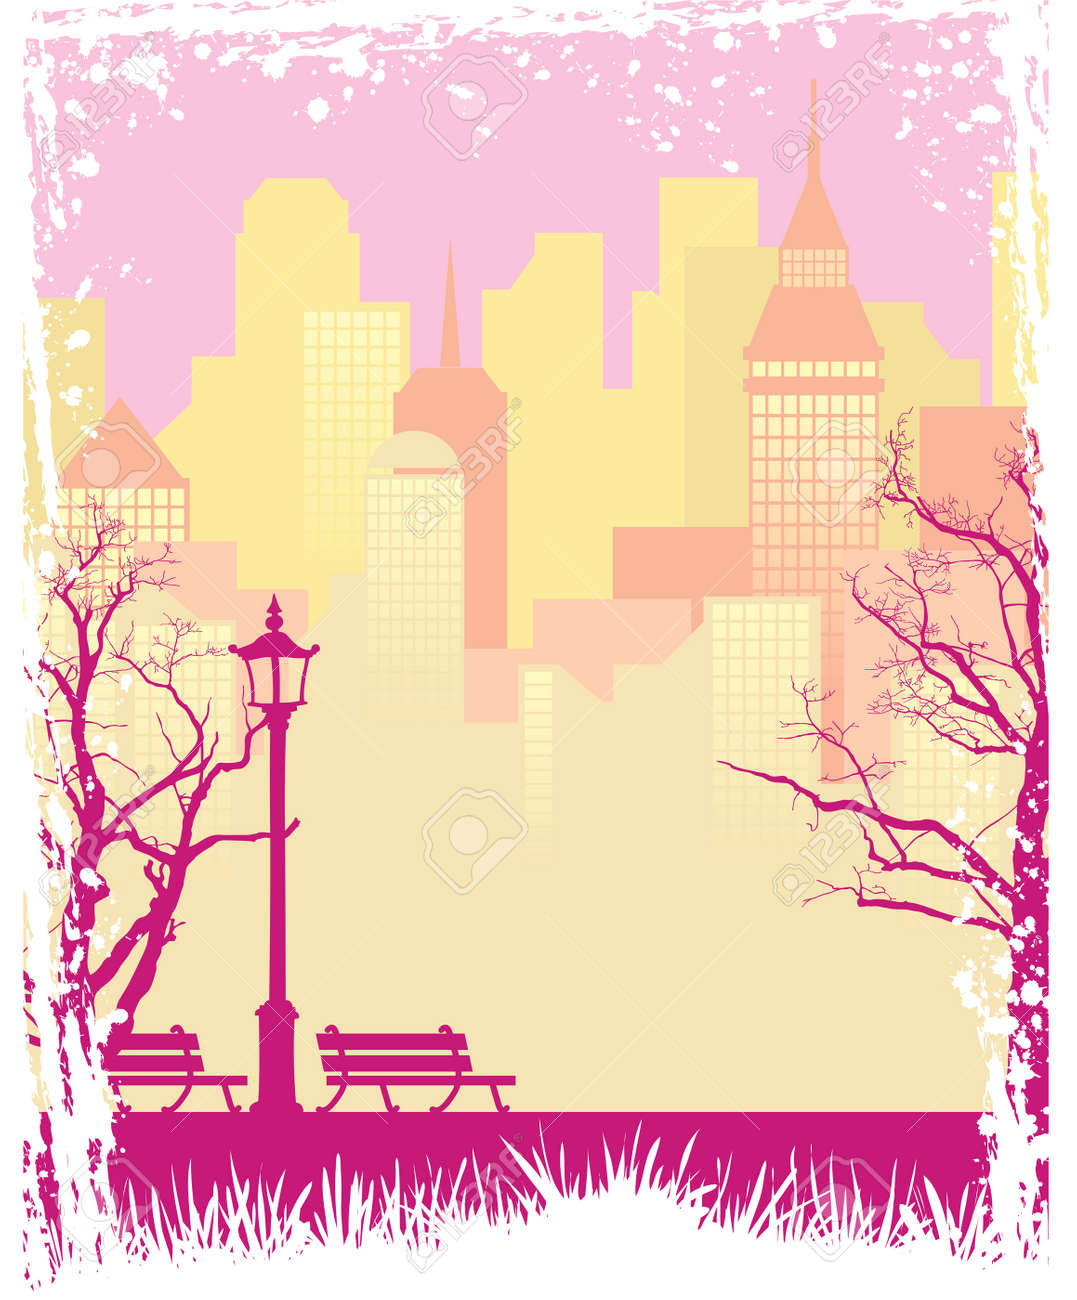 Grunge autumn background with a town and a park Stock Vector - 3595701